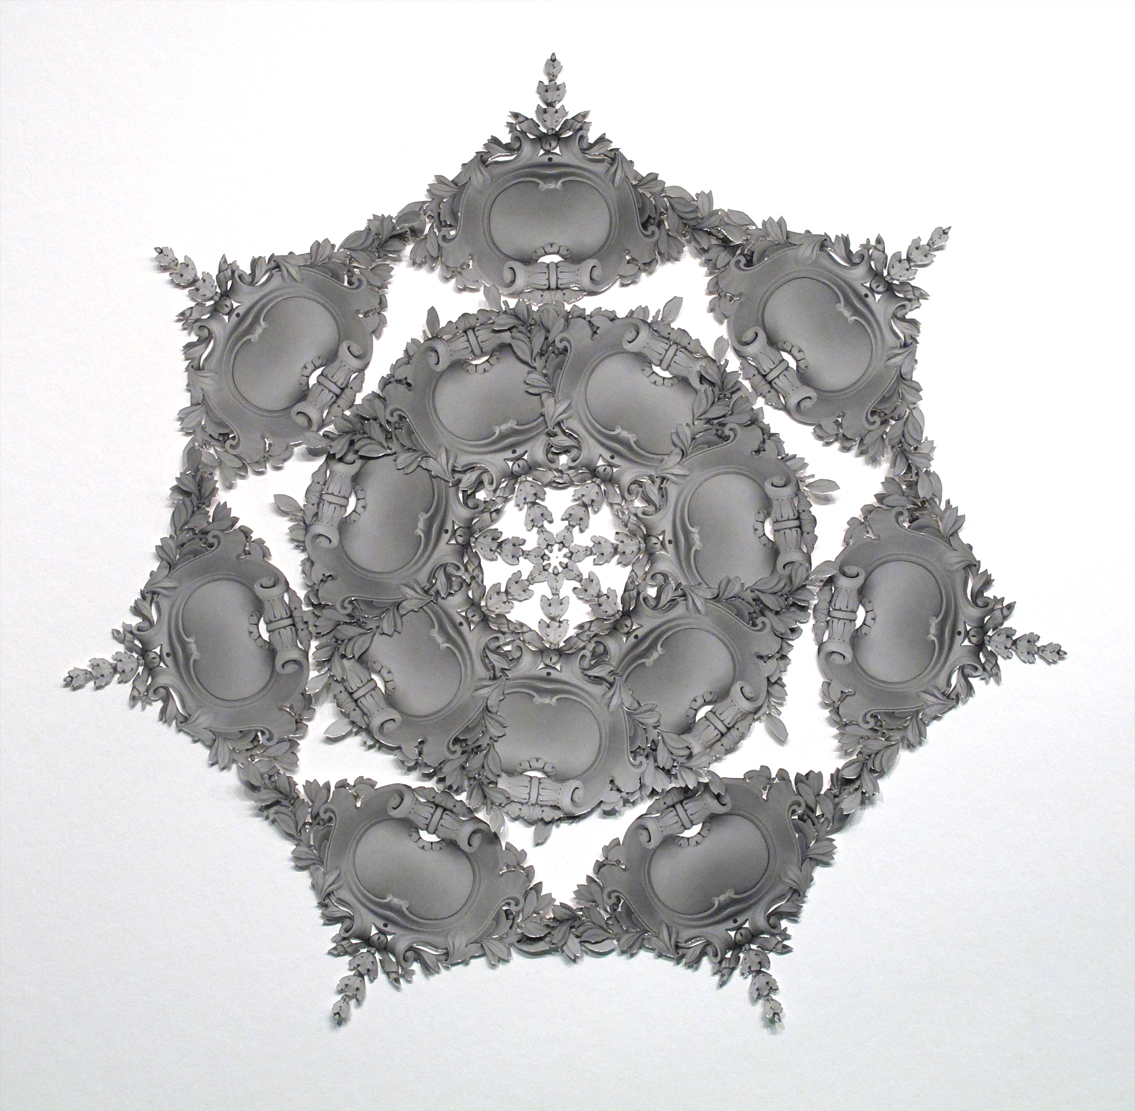 Hand-Cut-and-Assembled 3-D Gelatin Silver Photo Collage